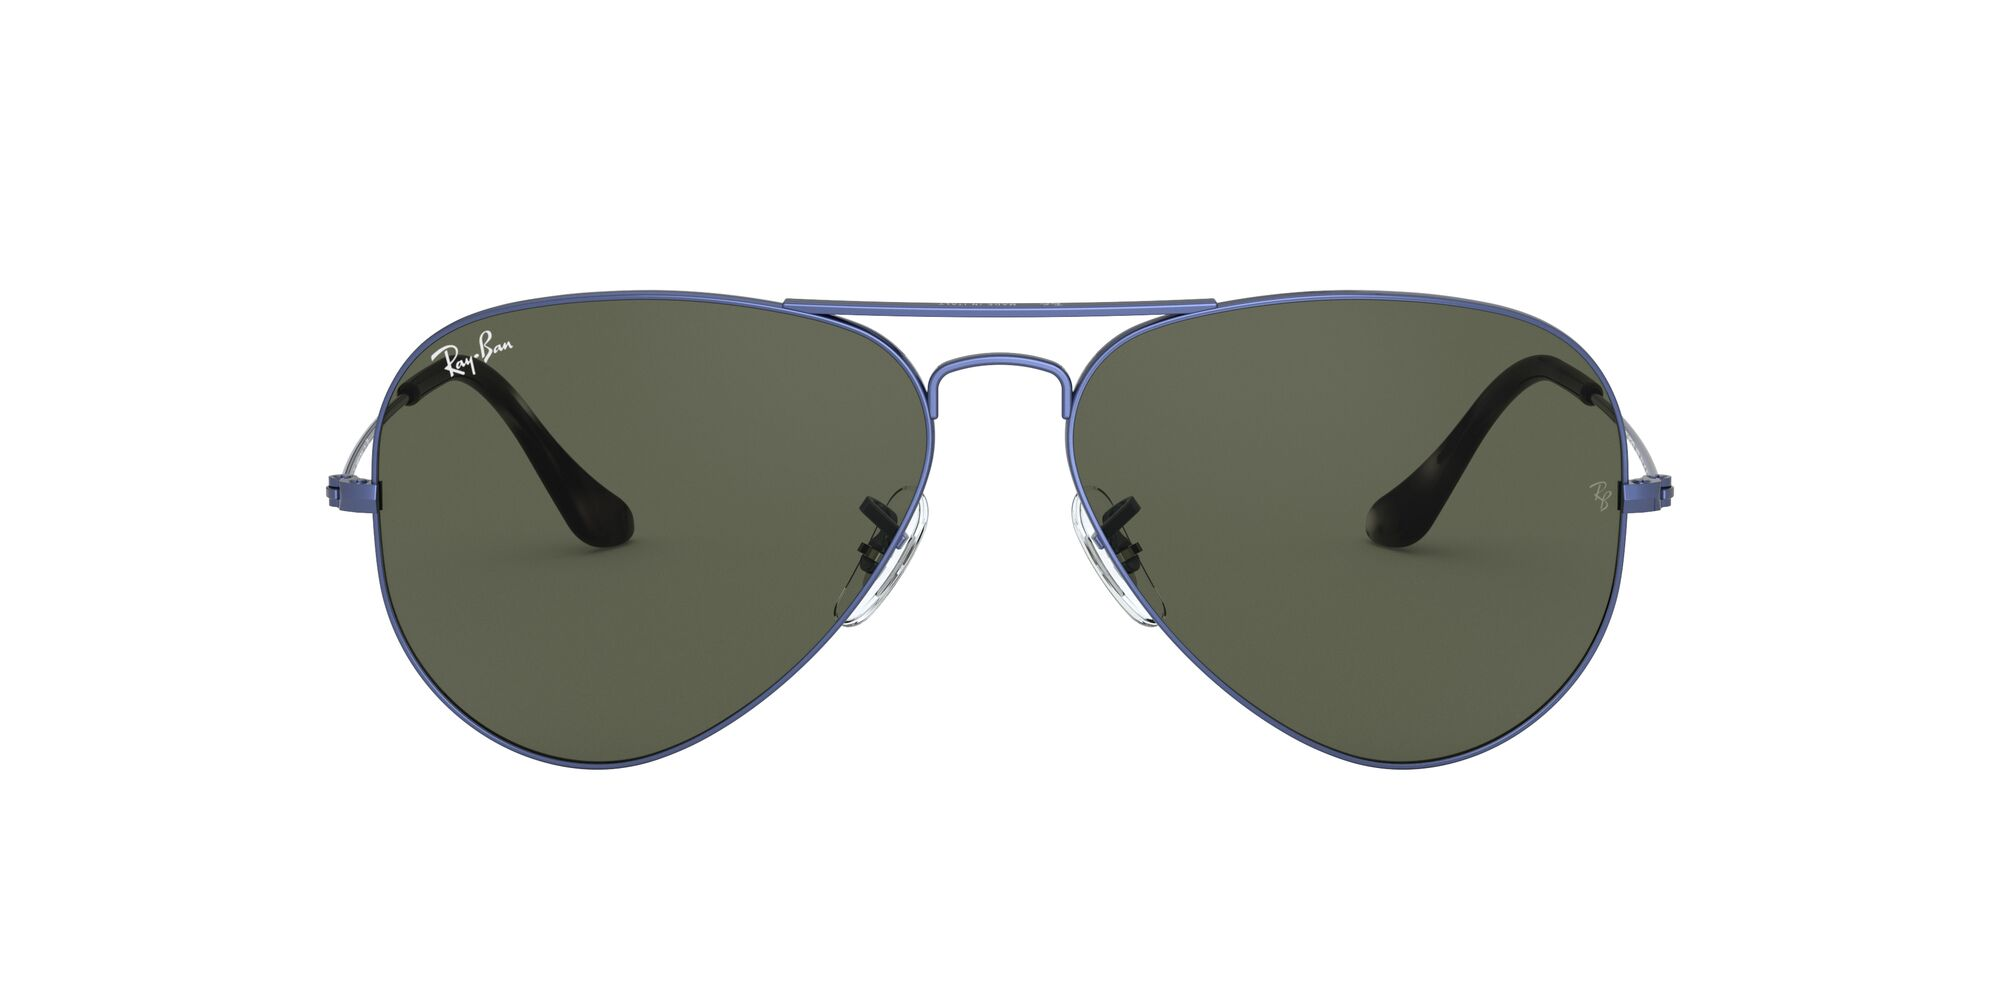 Front Ray-Ban Ray-Ban 0RB3025 918731 62/14 Blauw/Groen